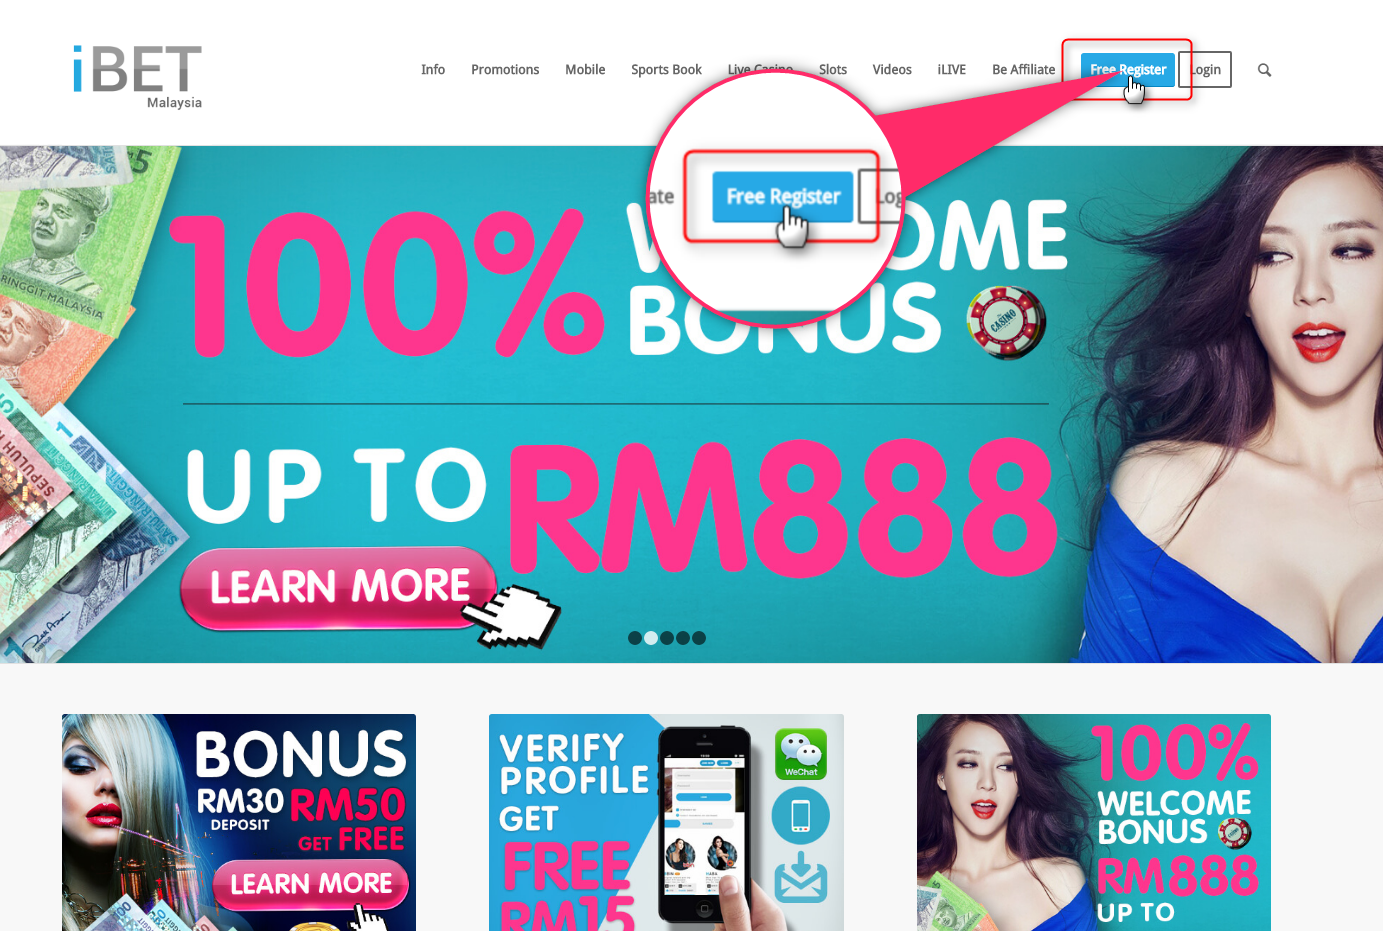 iBET teach you get free RM5 by verifying phone number